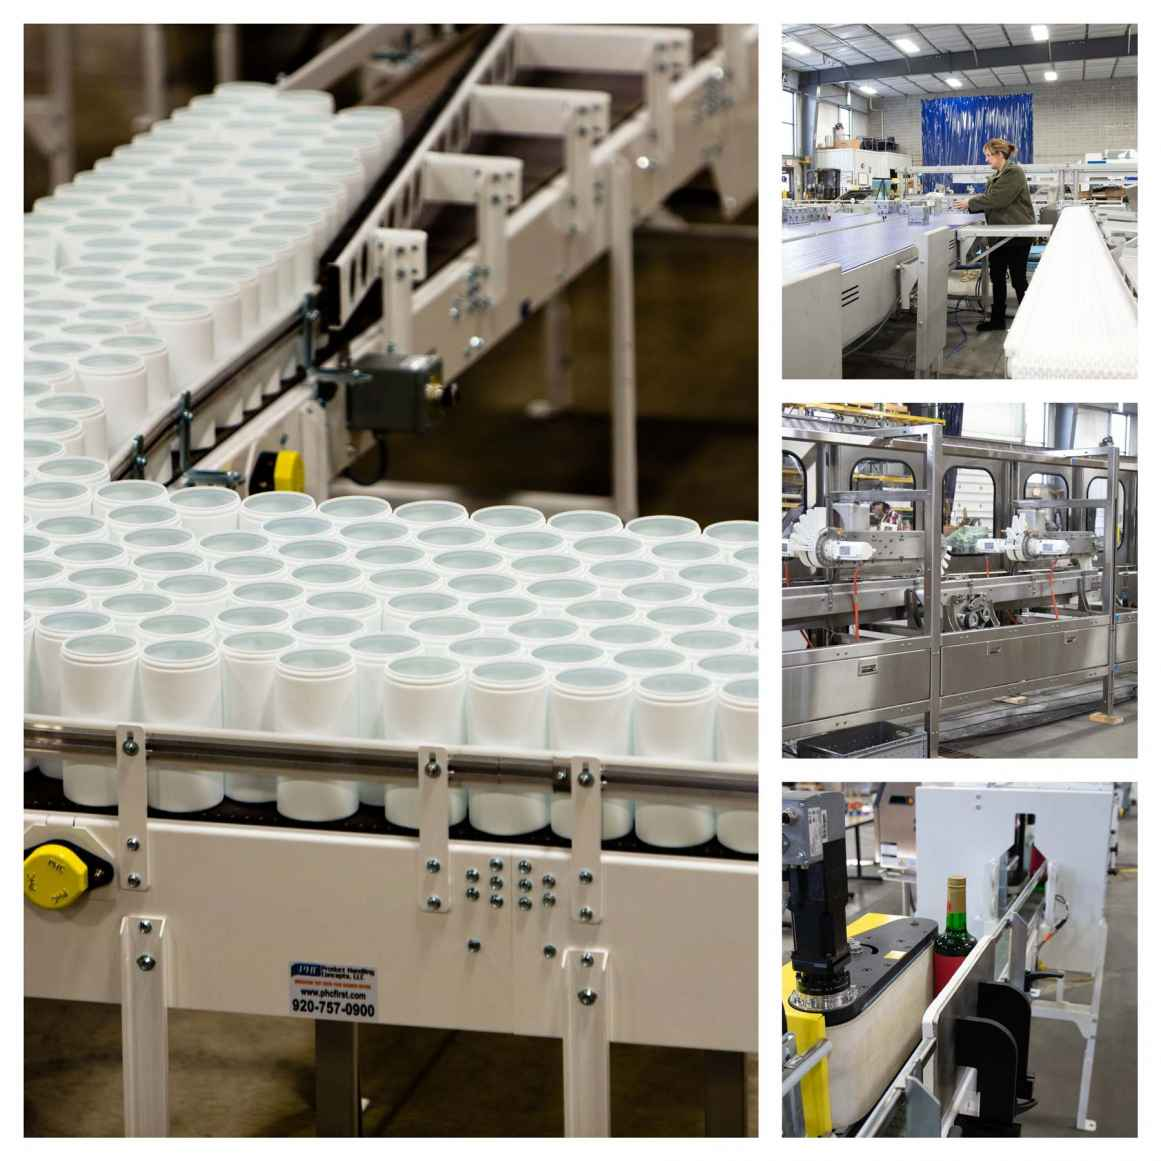 Robinson product handling automation